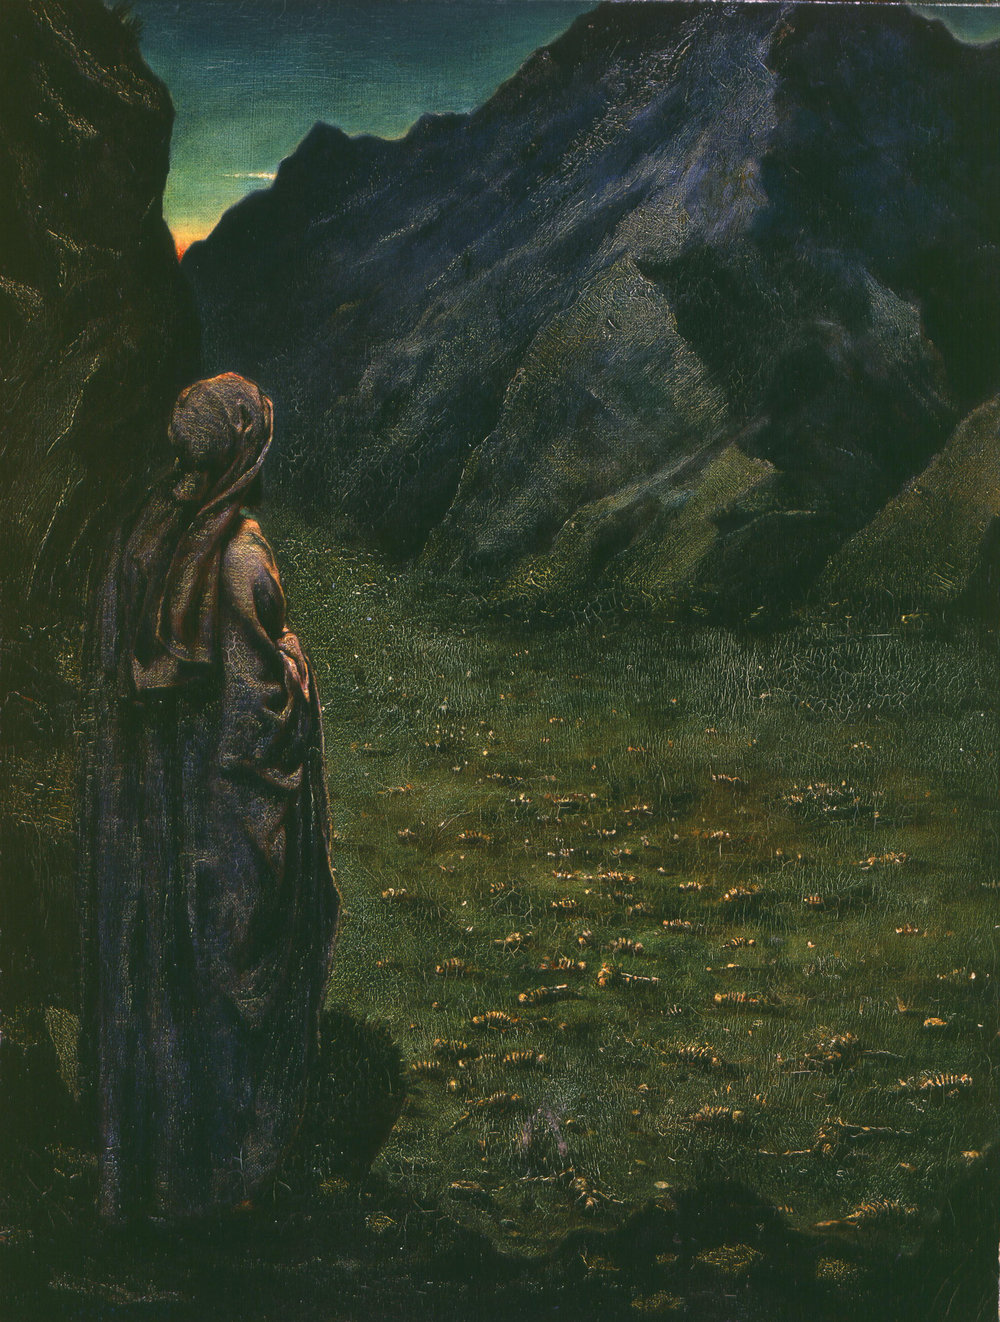 PHILIP BURNE-JONES, Ezekiel in the Valley of Dry Bones